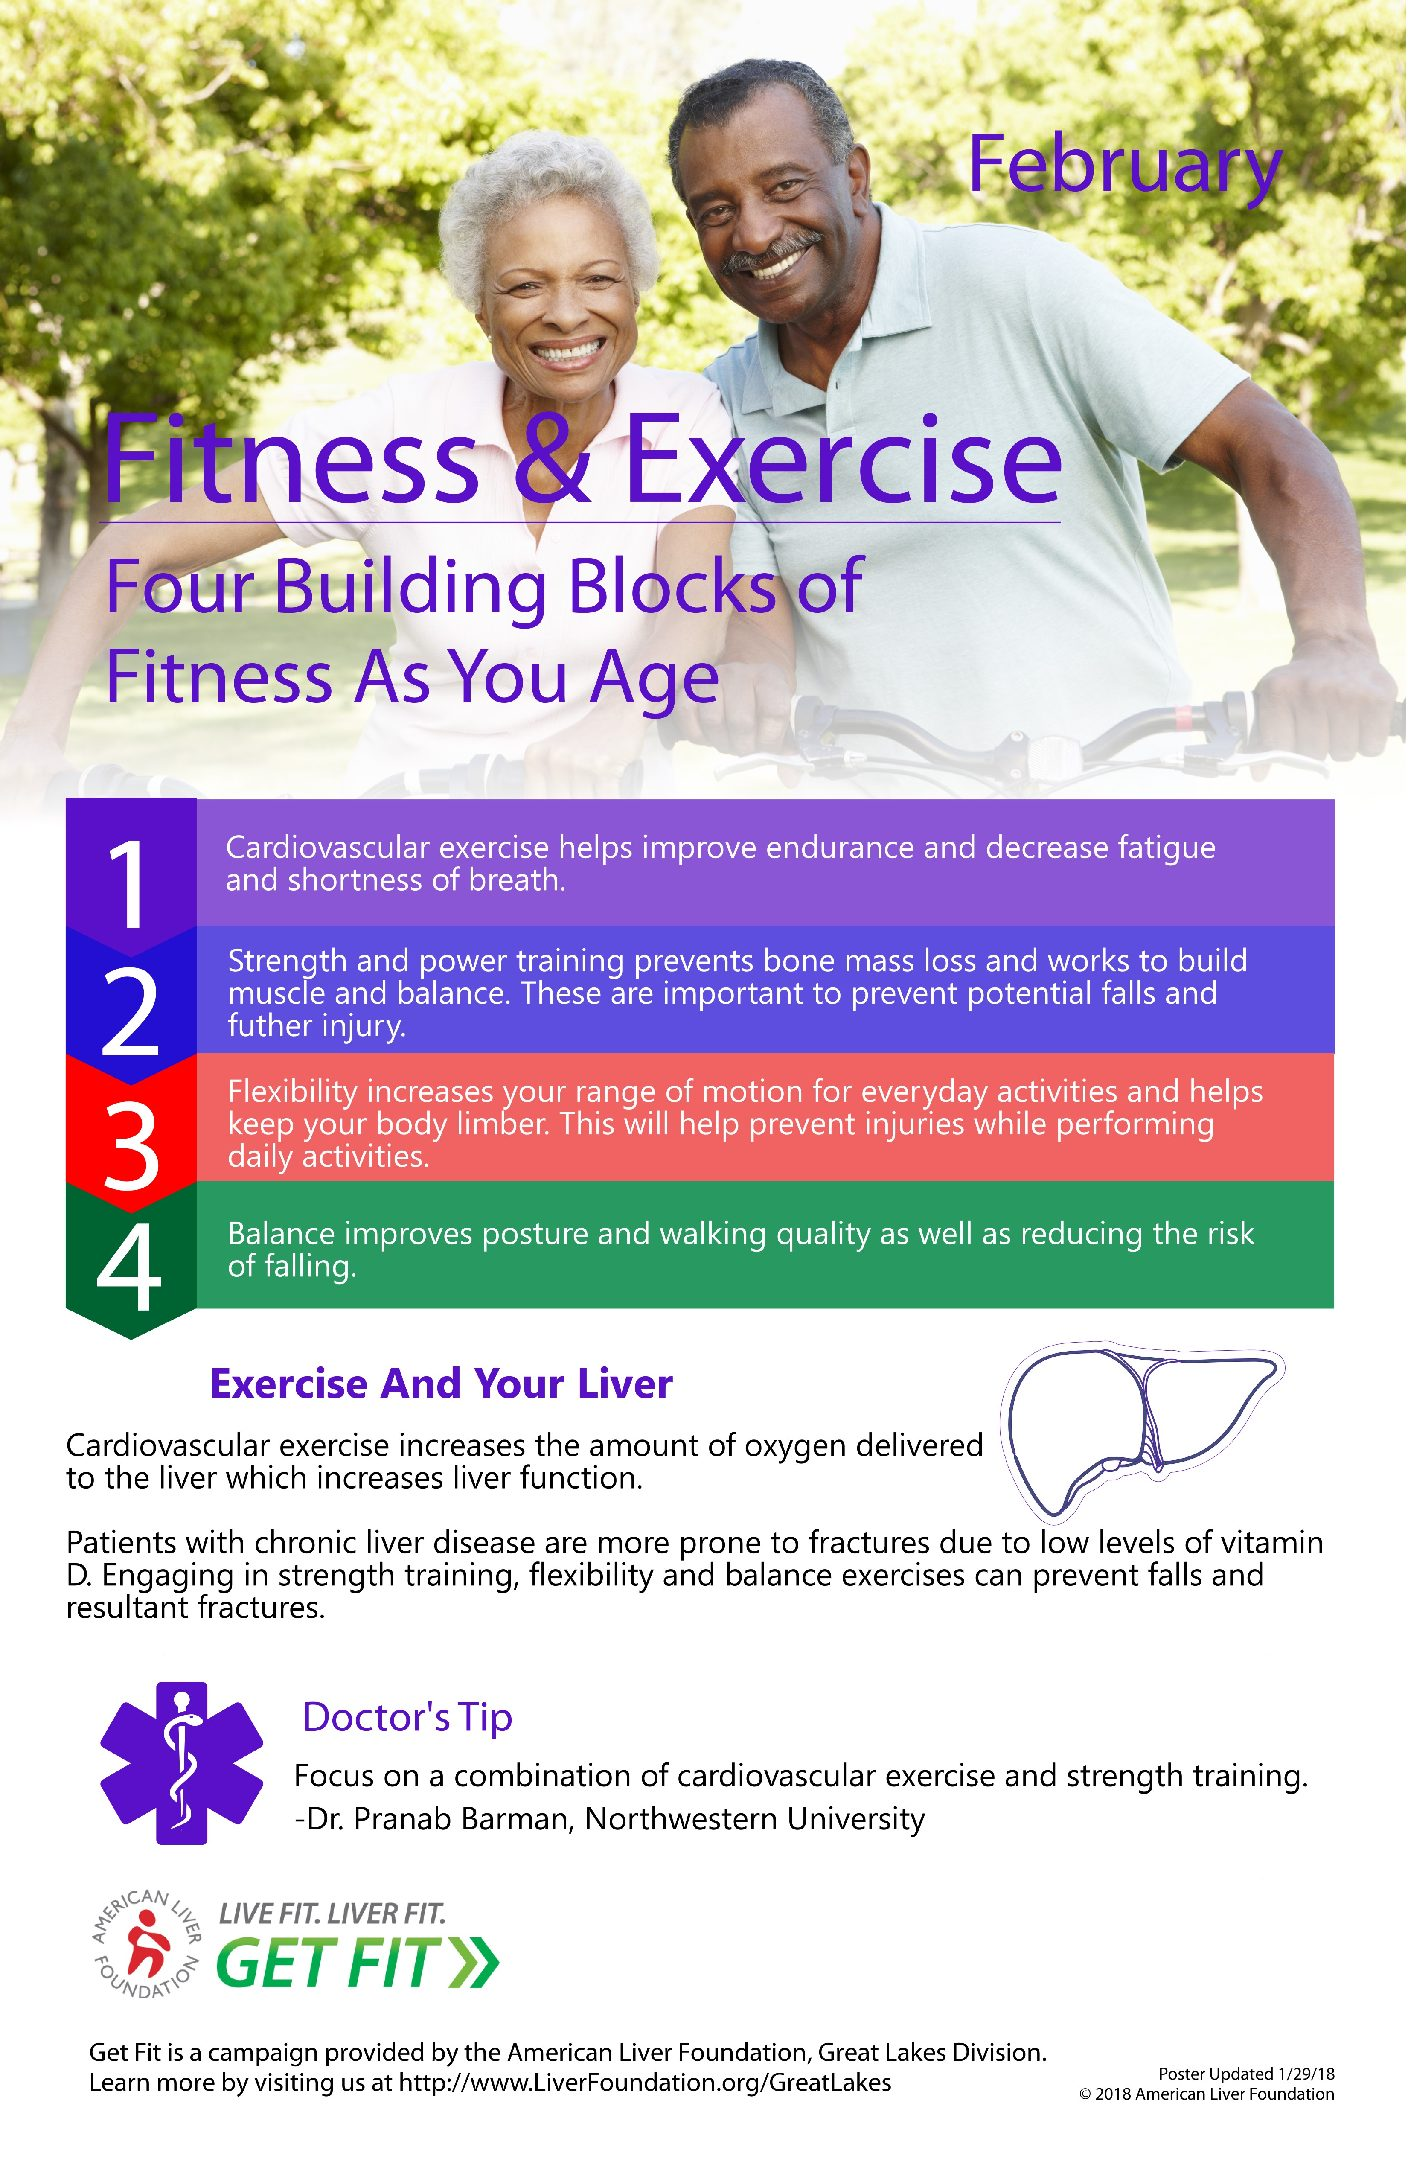 02-02-18-four-building-blocks-of-fitness-as-you-age